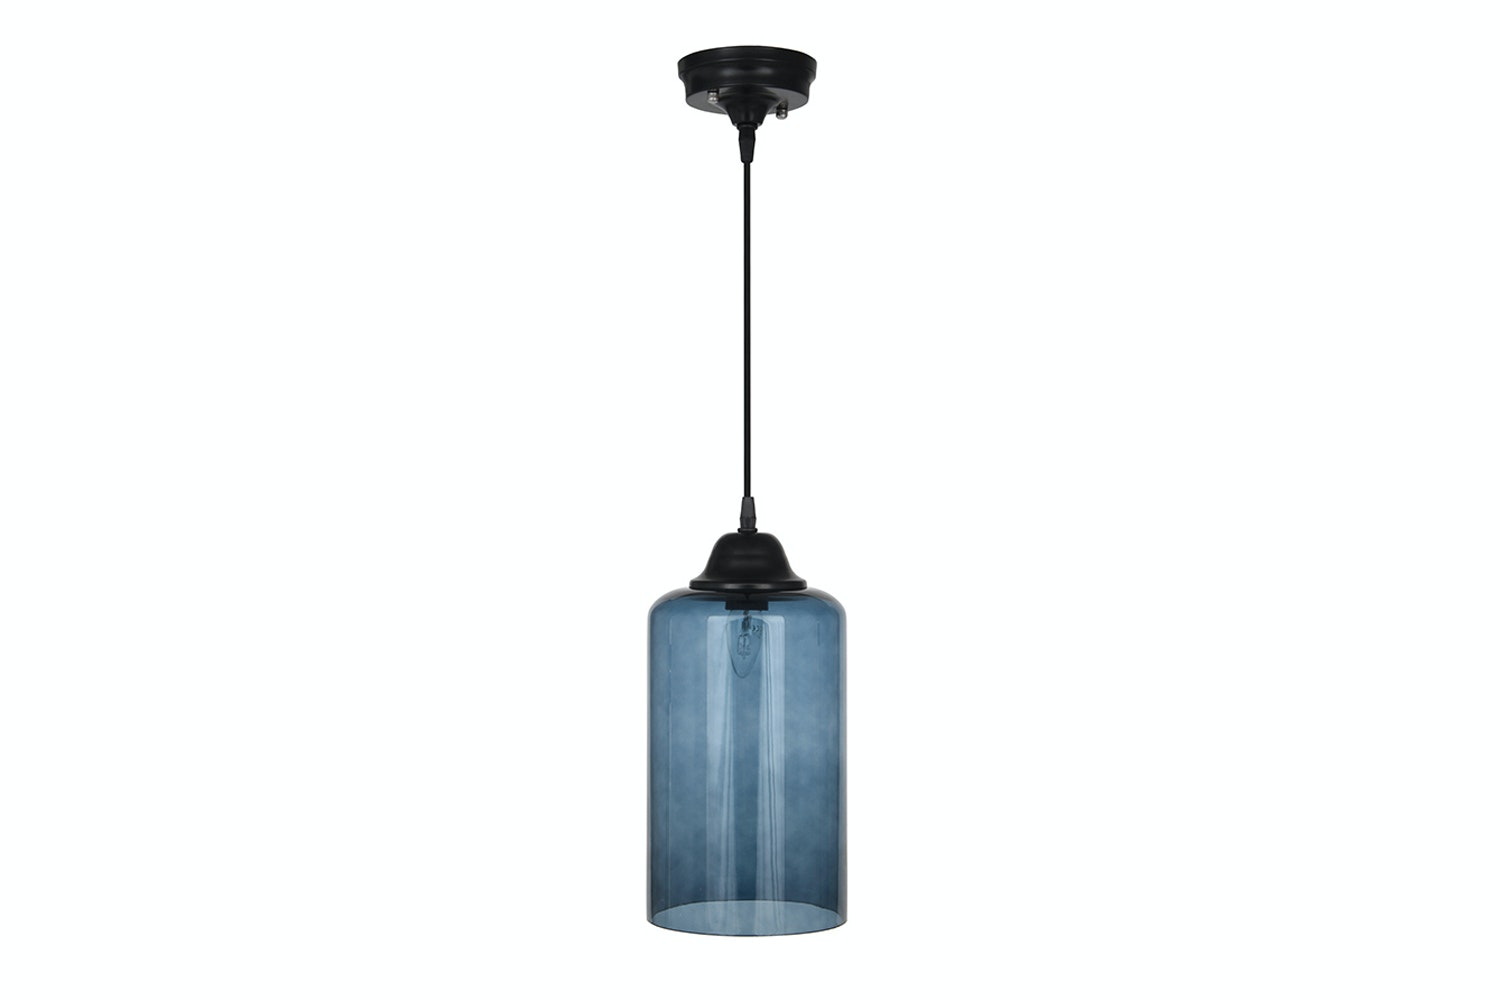 Teal Glass Cloche Electrified Pendant